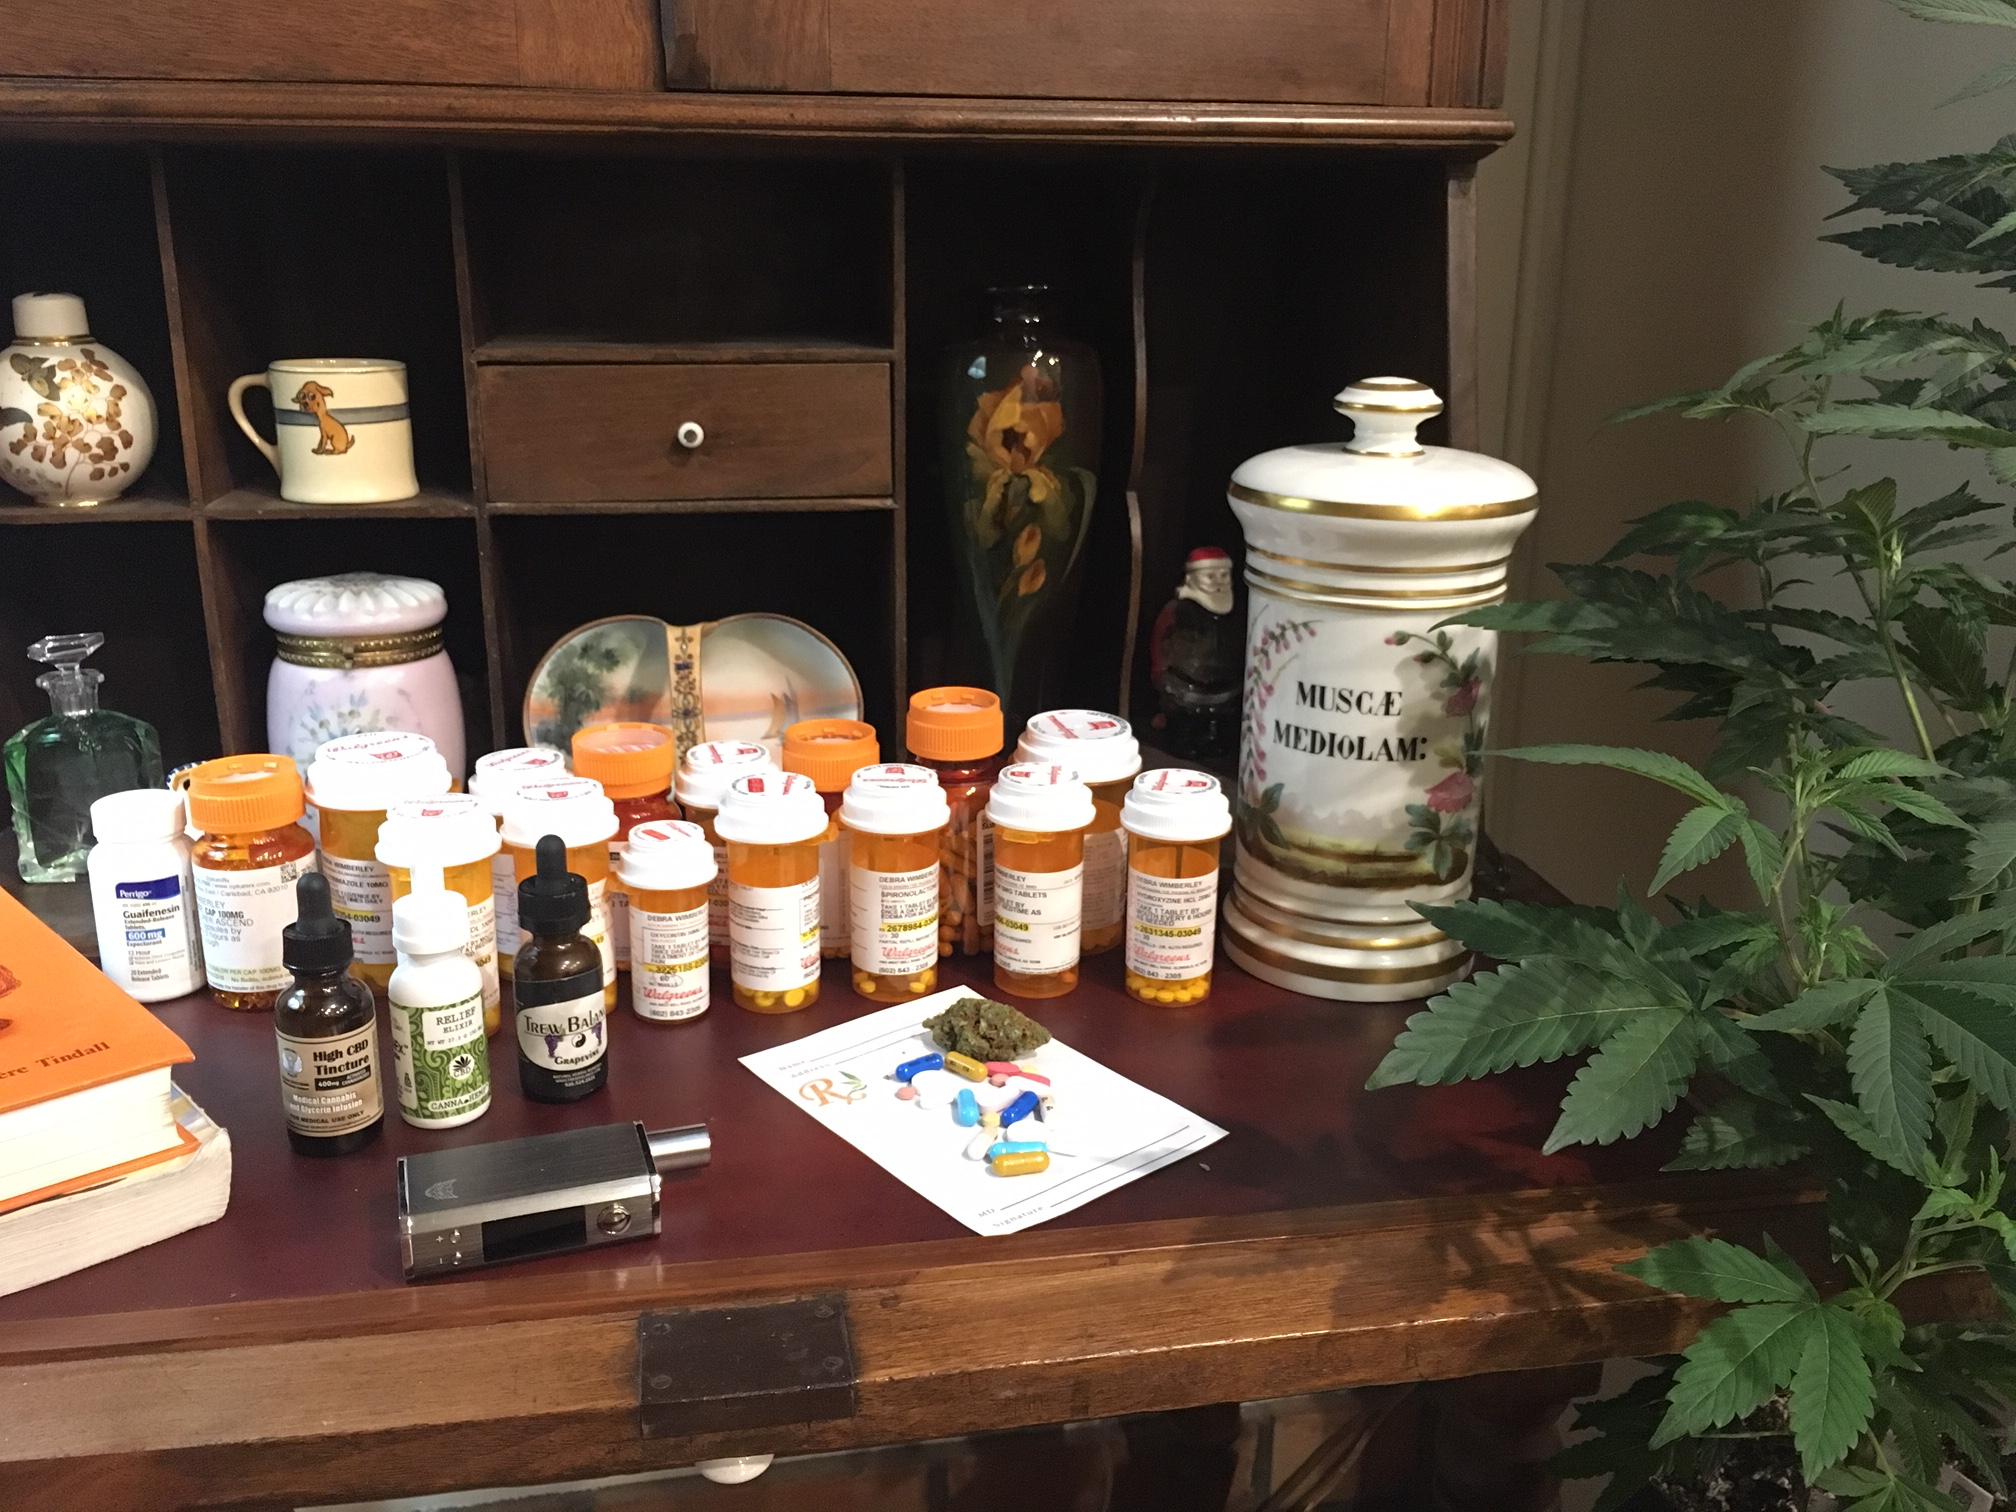 Cannabis & medications.